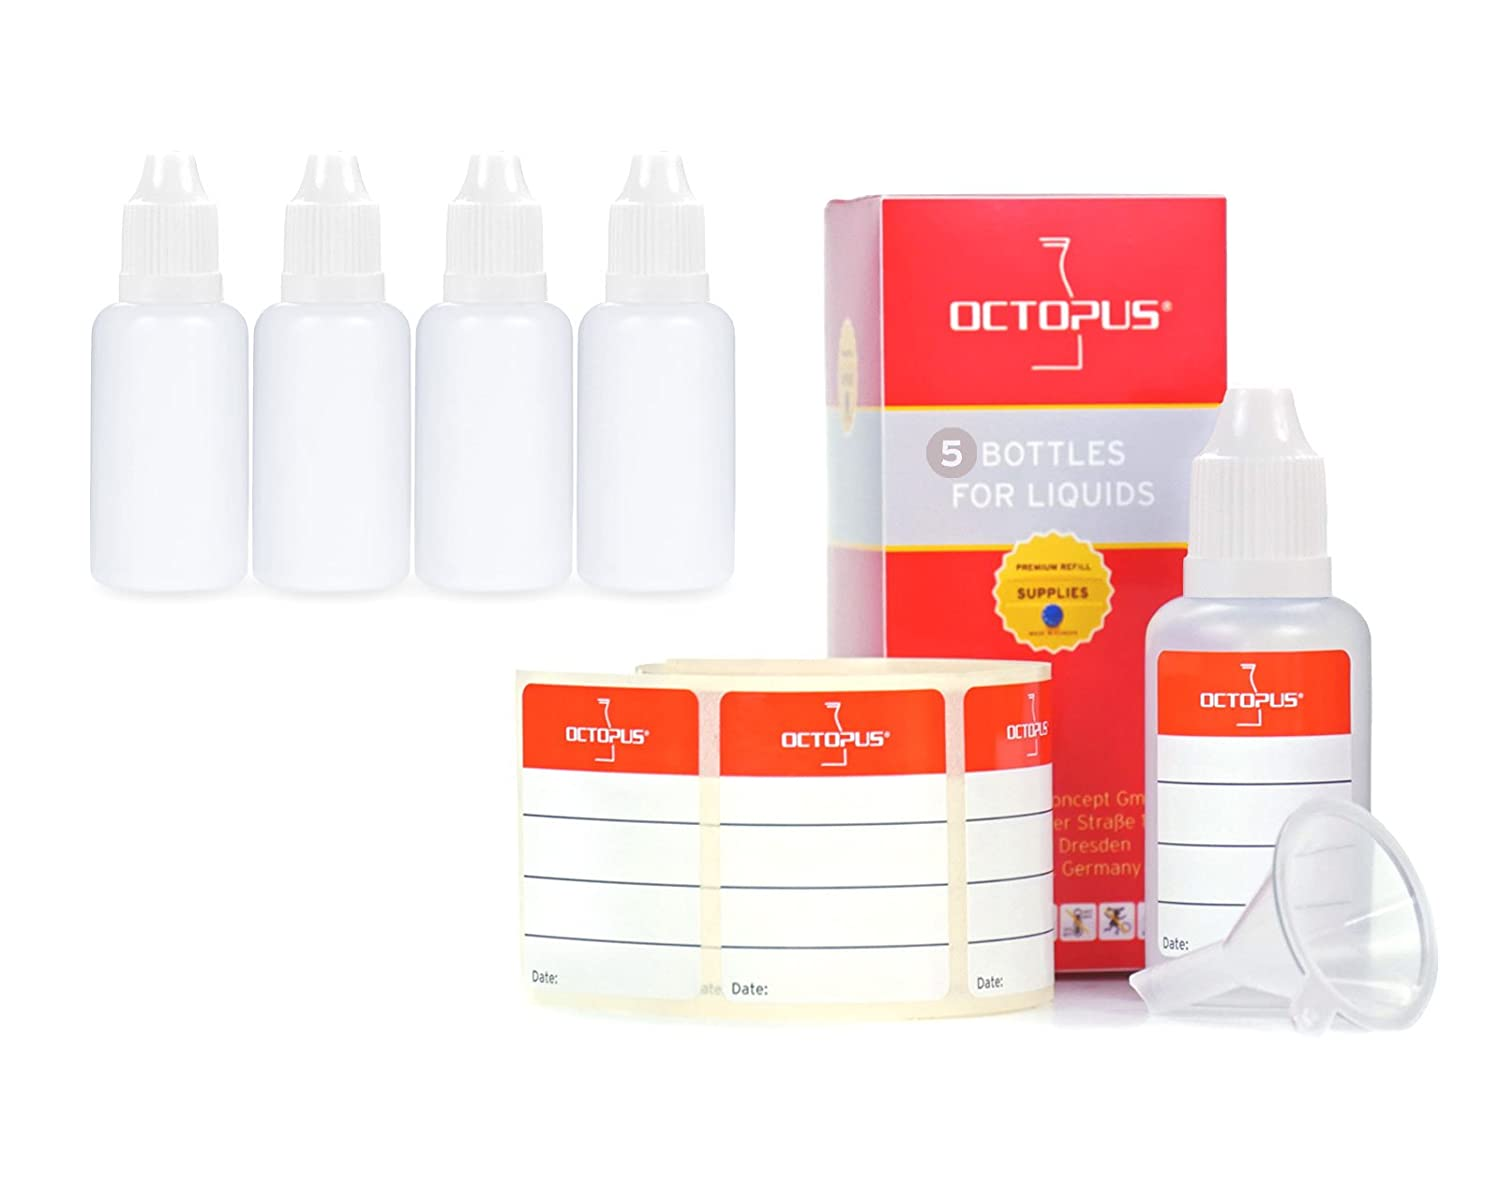 5 x 30 ml Octopus dropper bottles for dosing liquids, e-liquids, eye drops, empty LDPE plastic bottles transparent, plastic bottles with dripping caps, with child safety lock, incl. 5 labels Octopus Concept GmbH